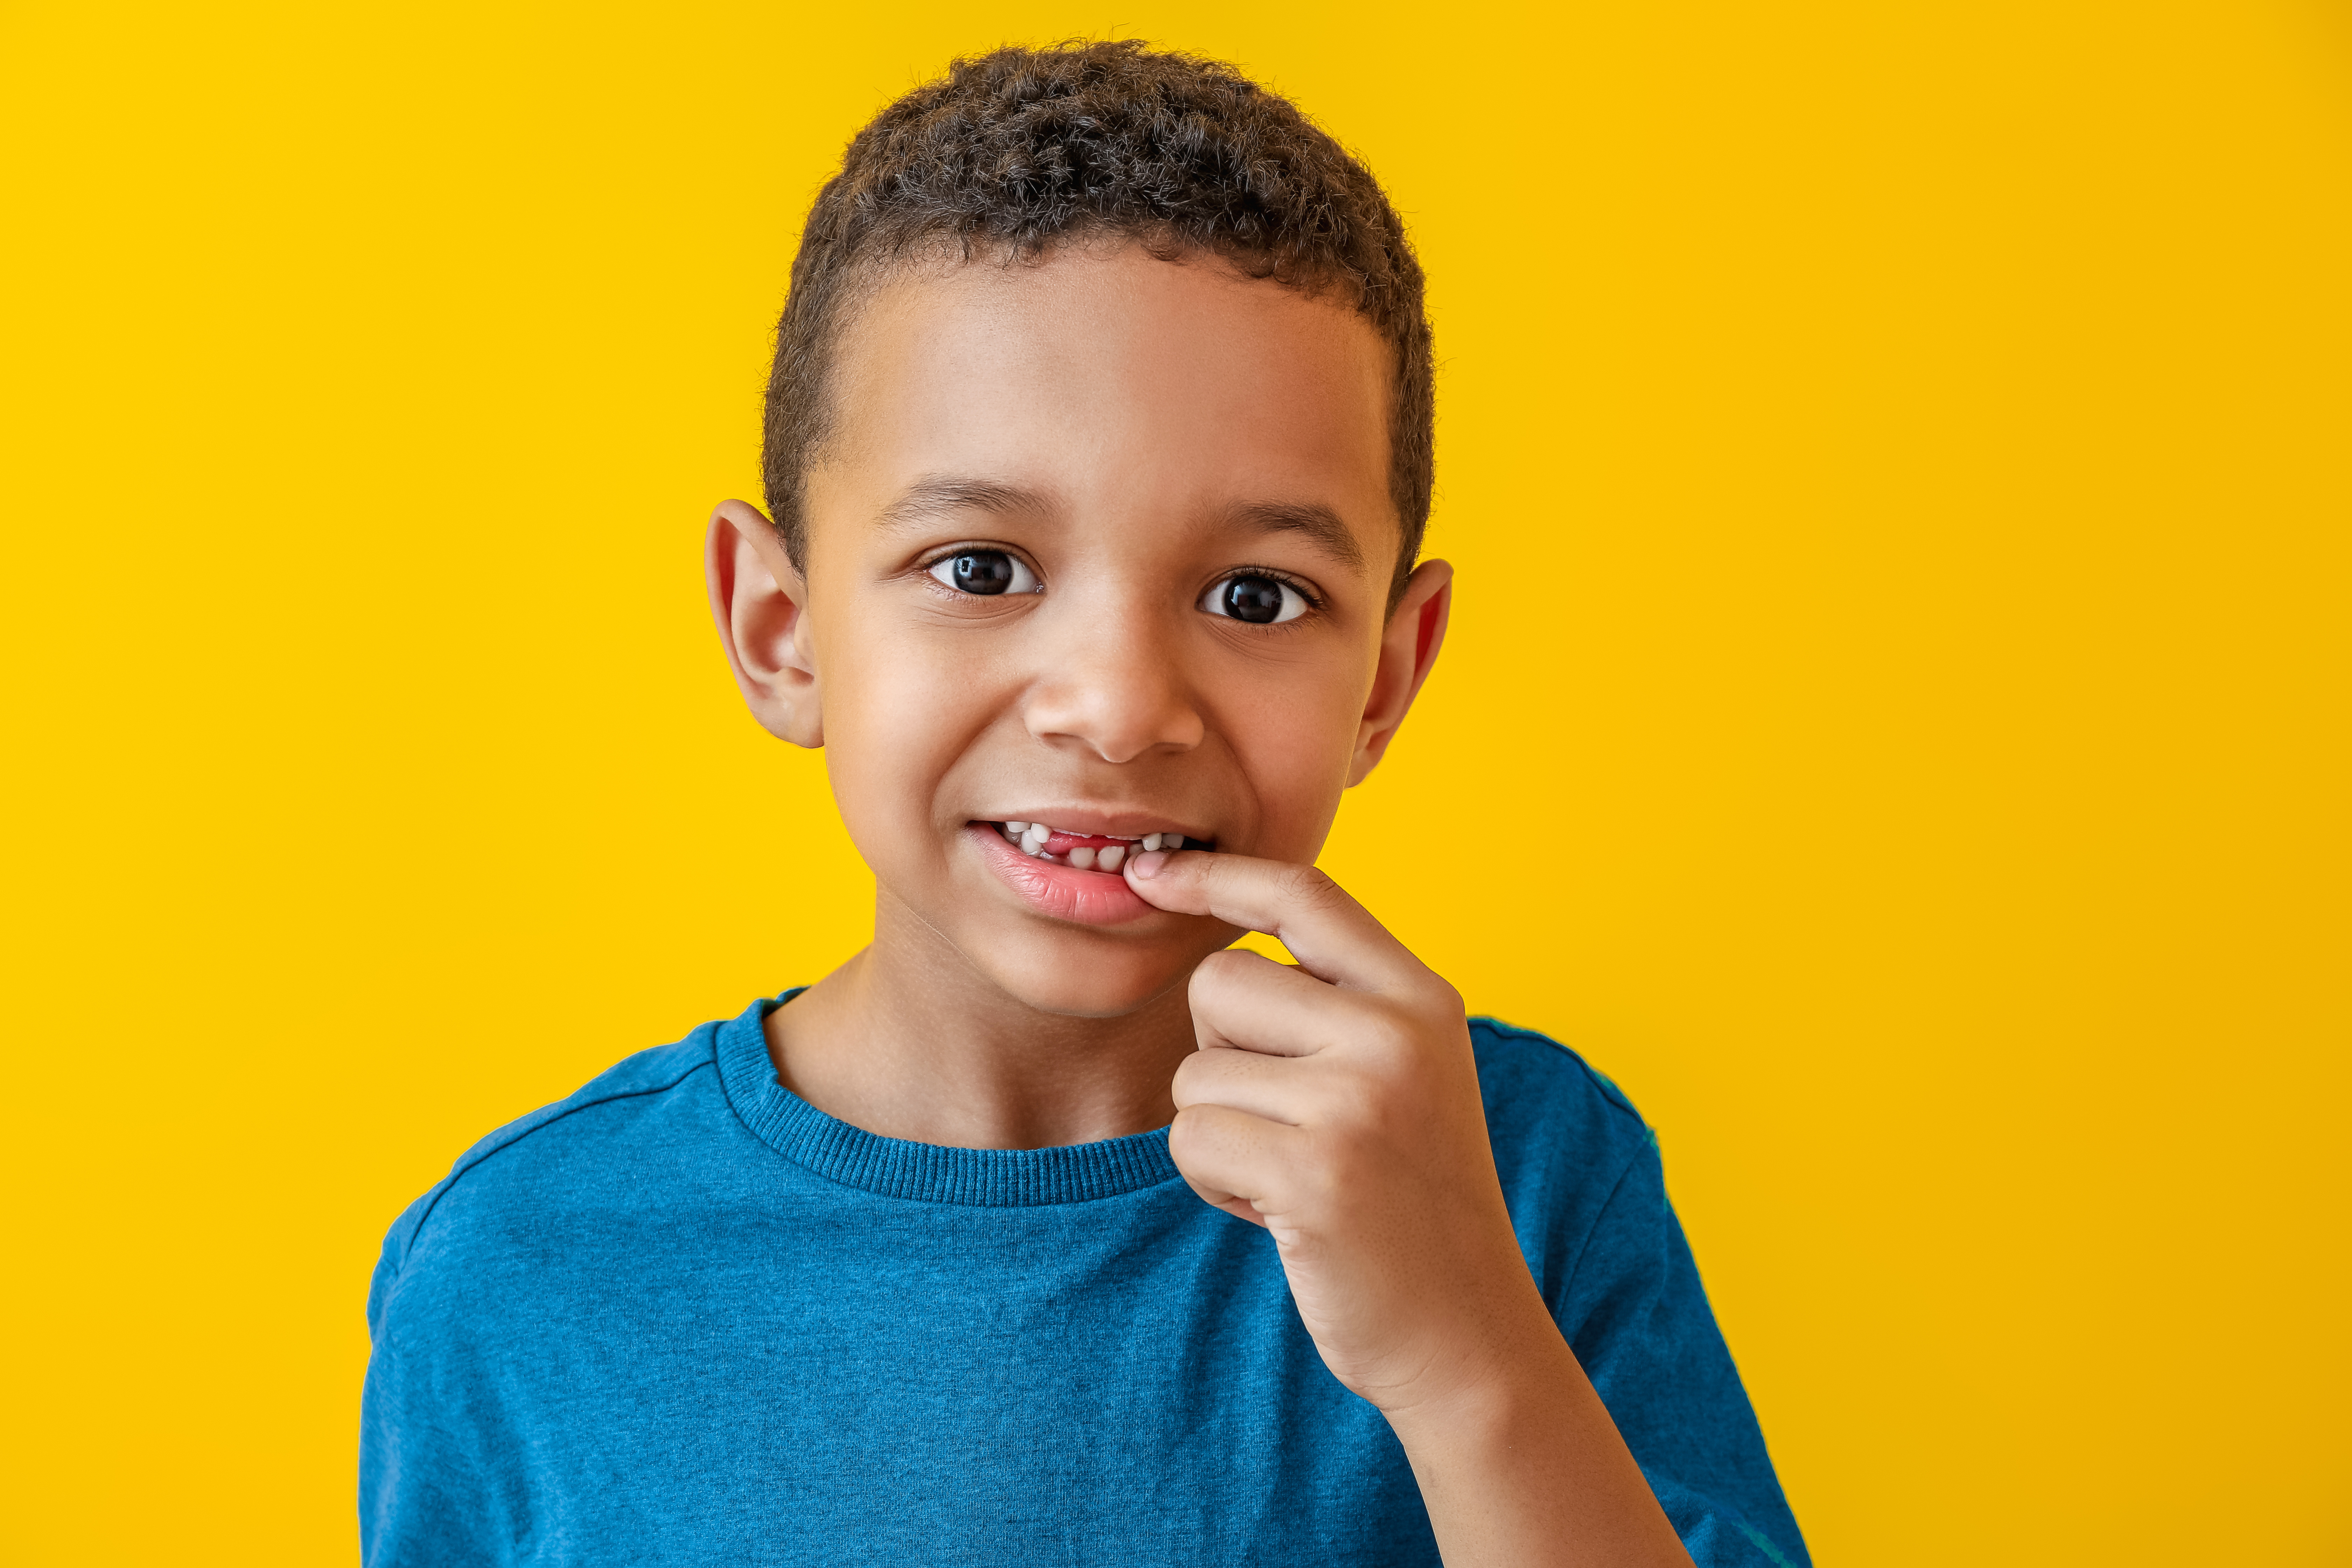 Smiling child pointing to his teeth before his back to school dental checkup